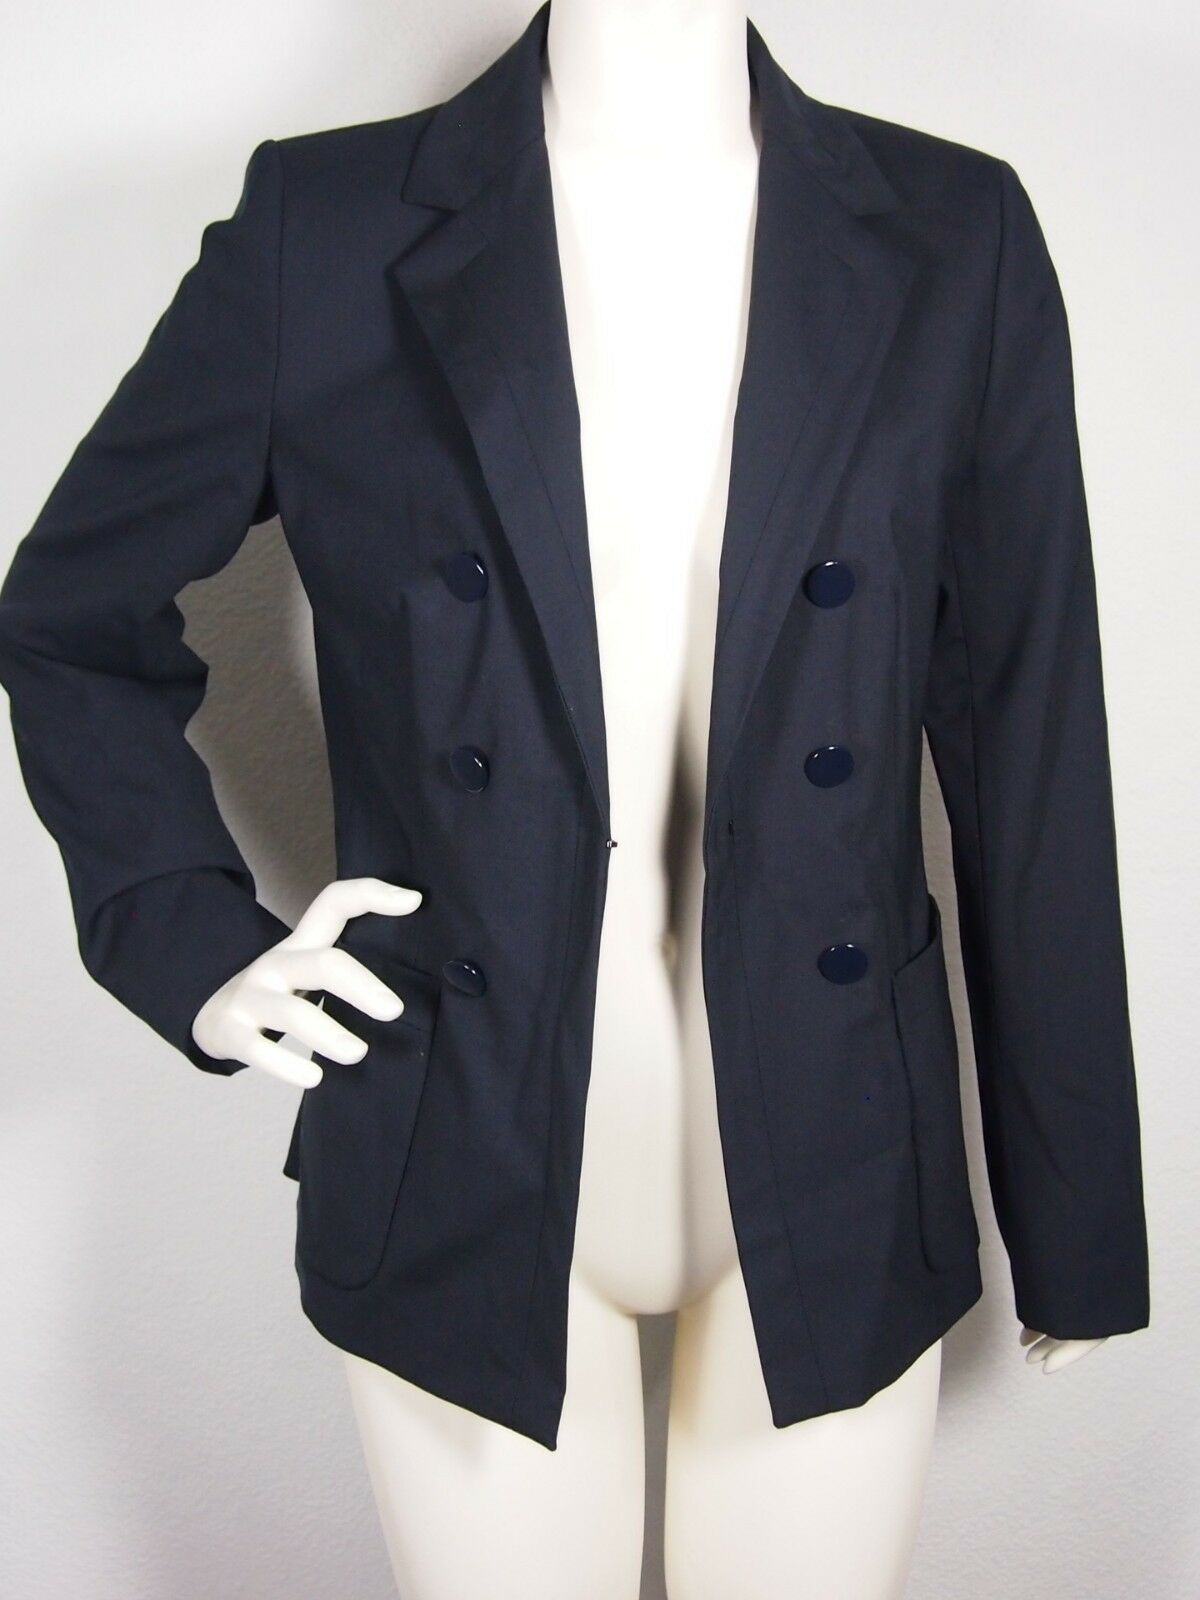 WEEKEND BY MAXMARA Anfora Faux Double Breast Blazer Navy Sz 12 Reg 475.00